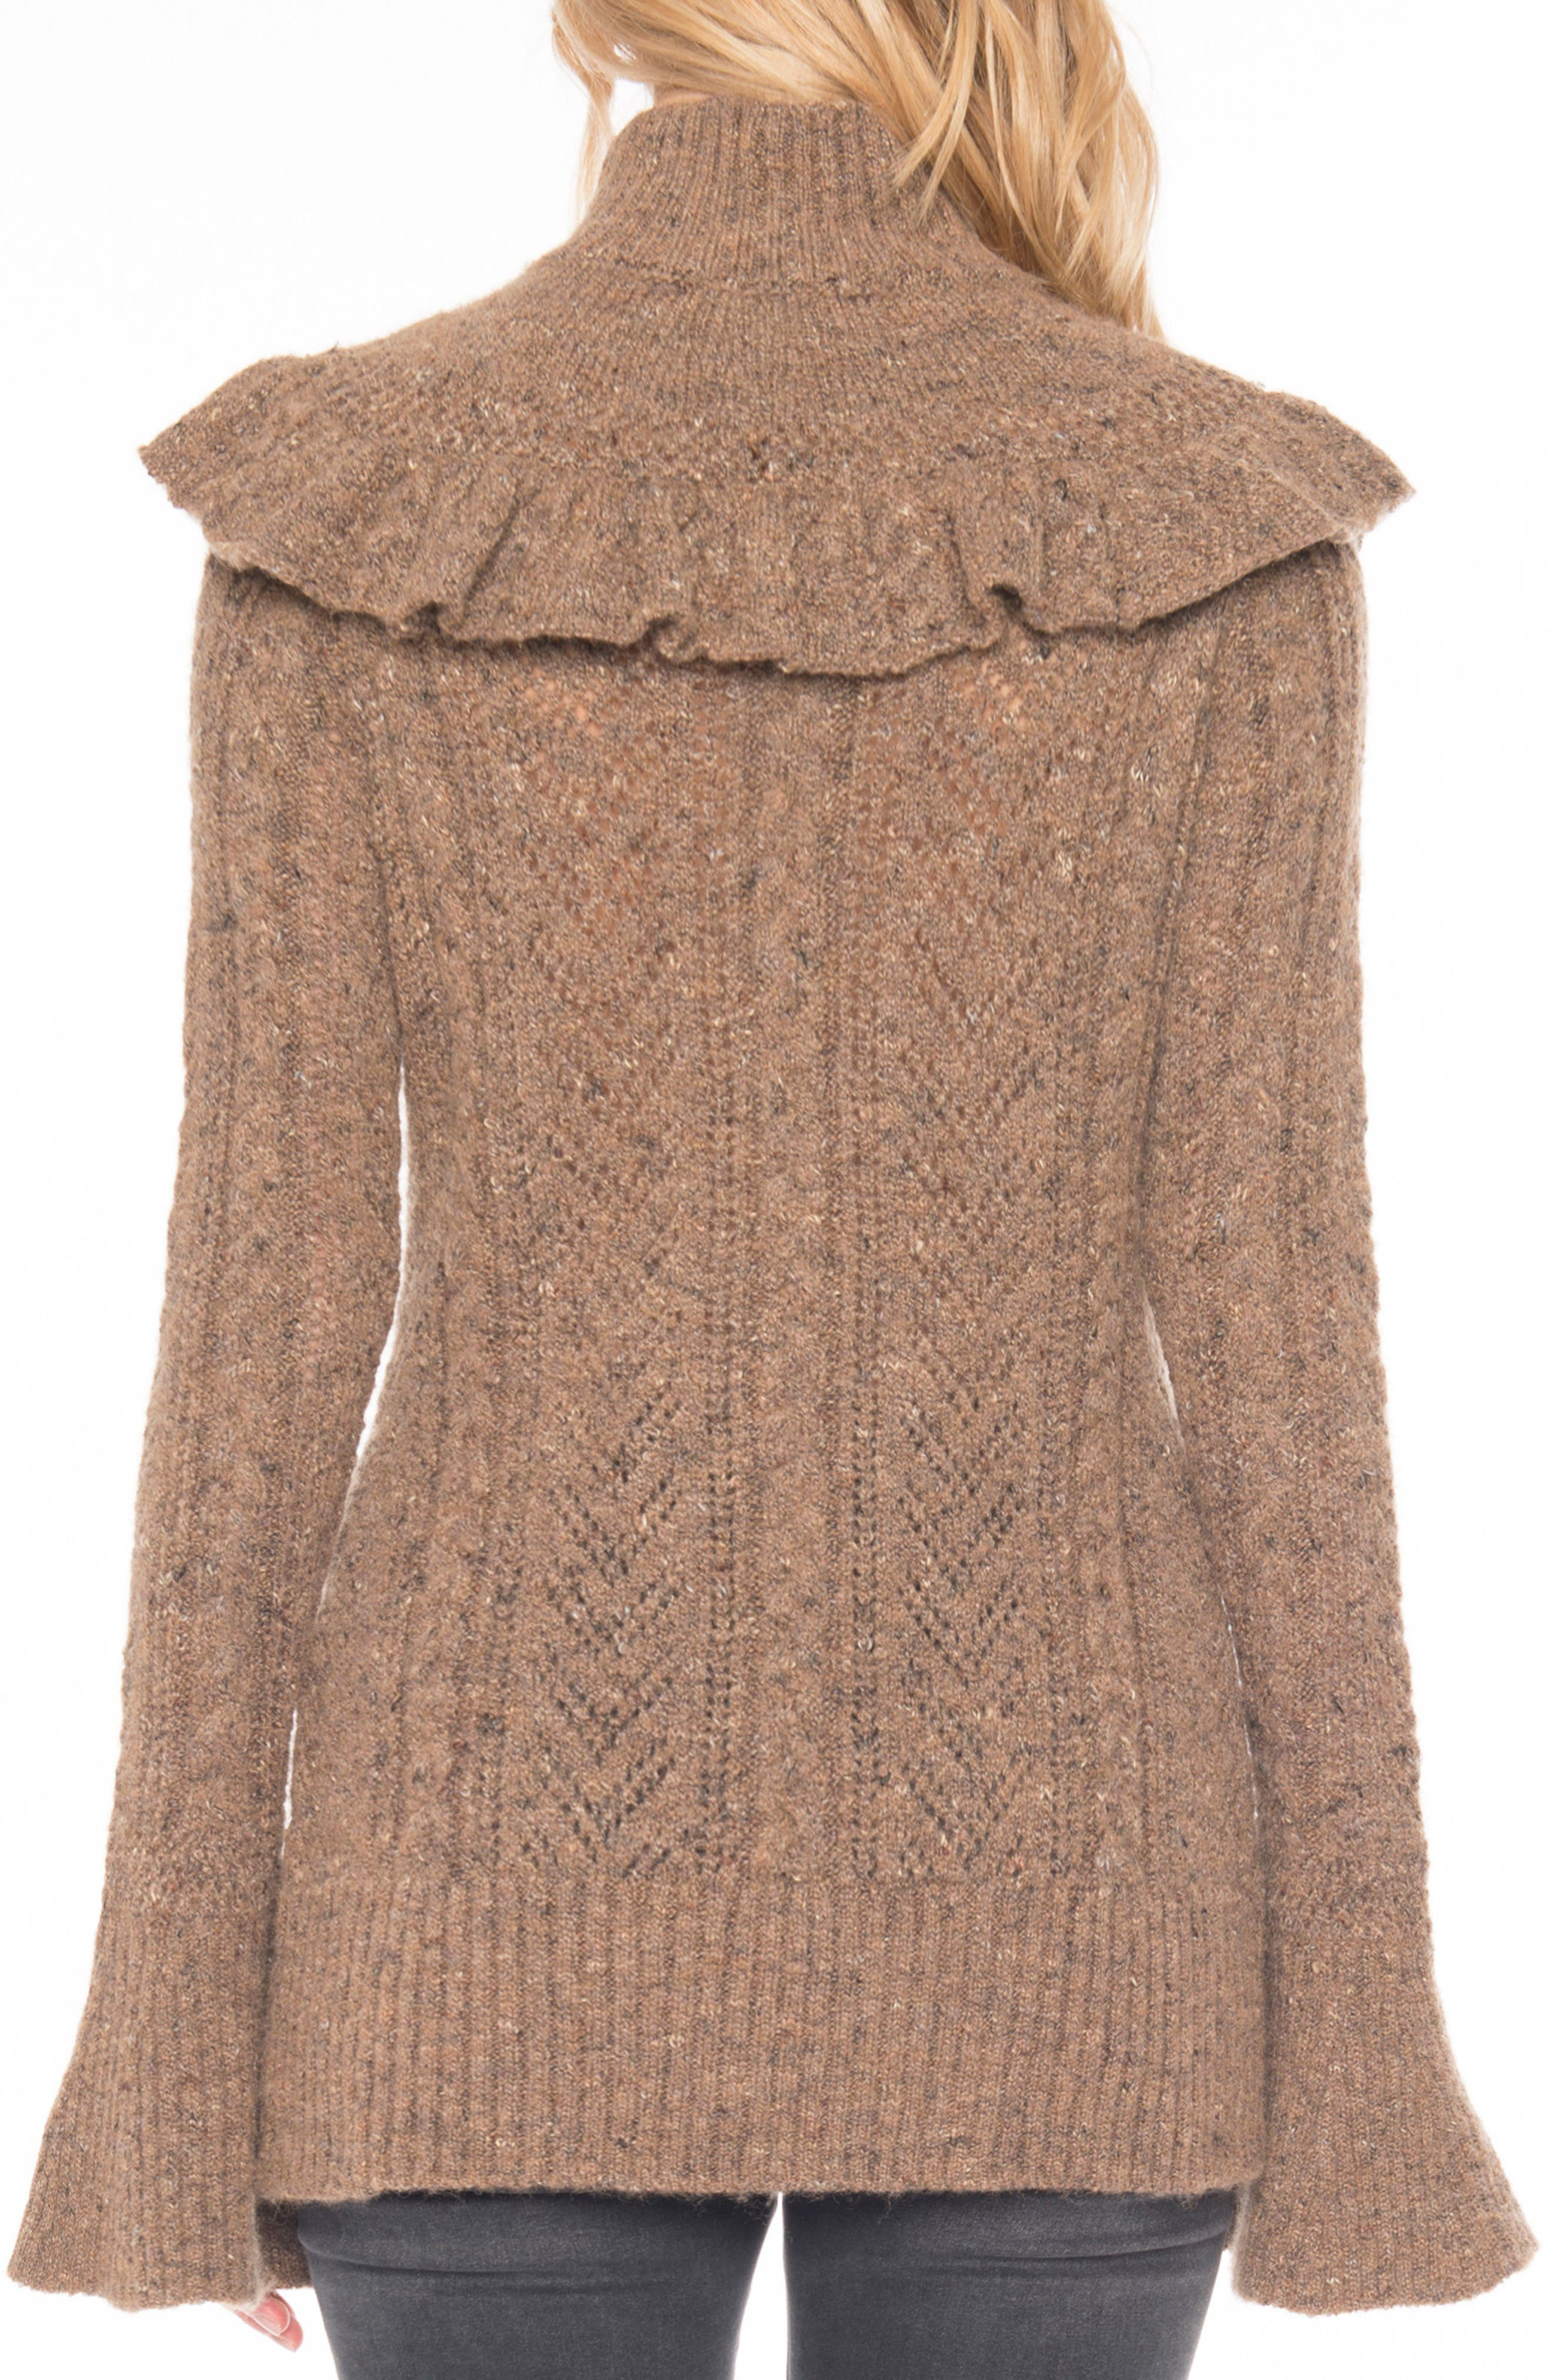 Pointelle Turtleneck Sweater,                             Alternate thumbnail 3, color,                             Toffee